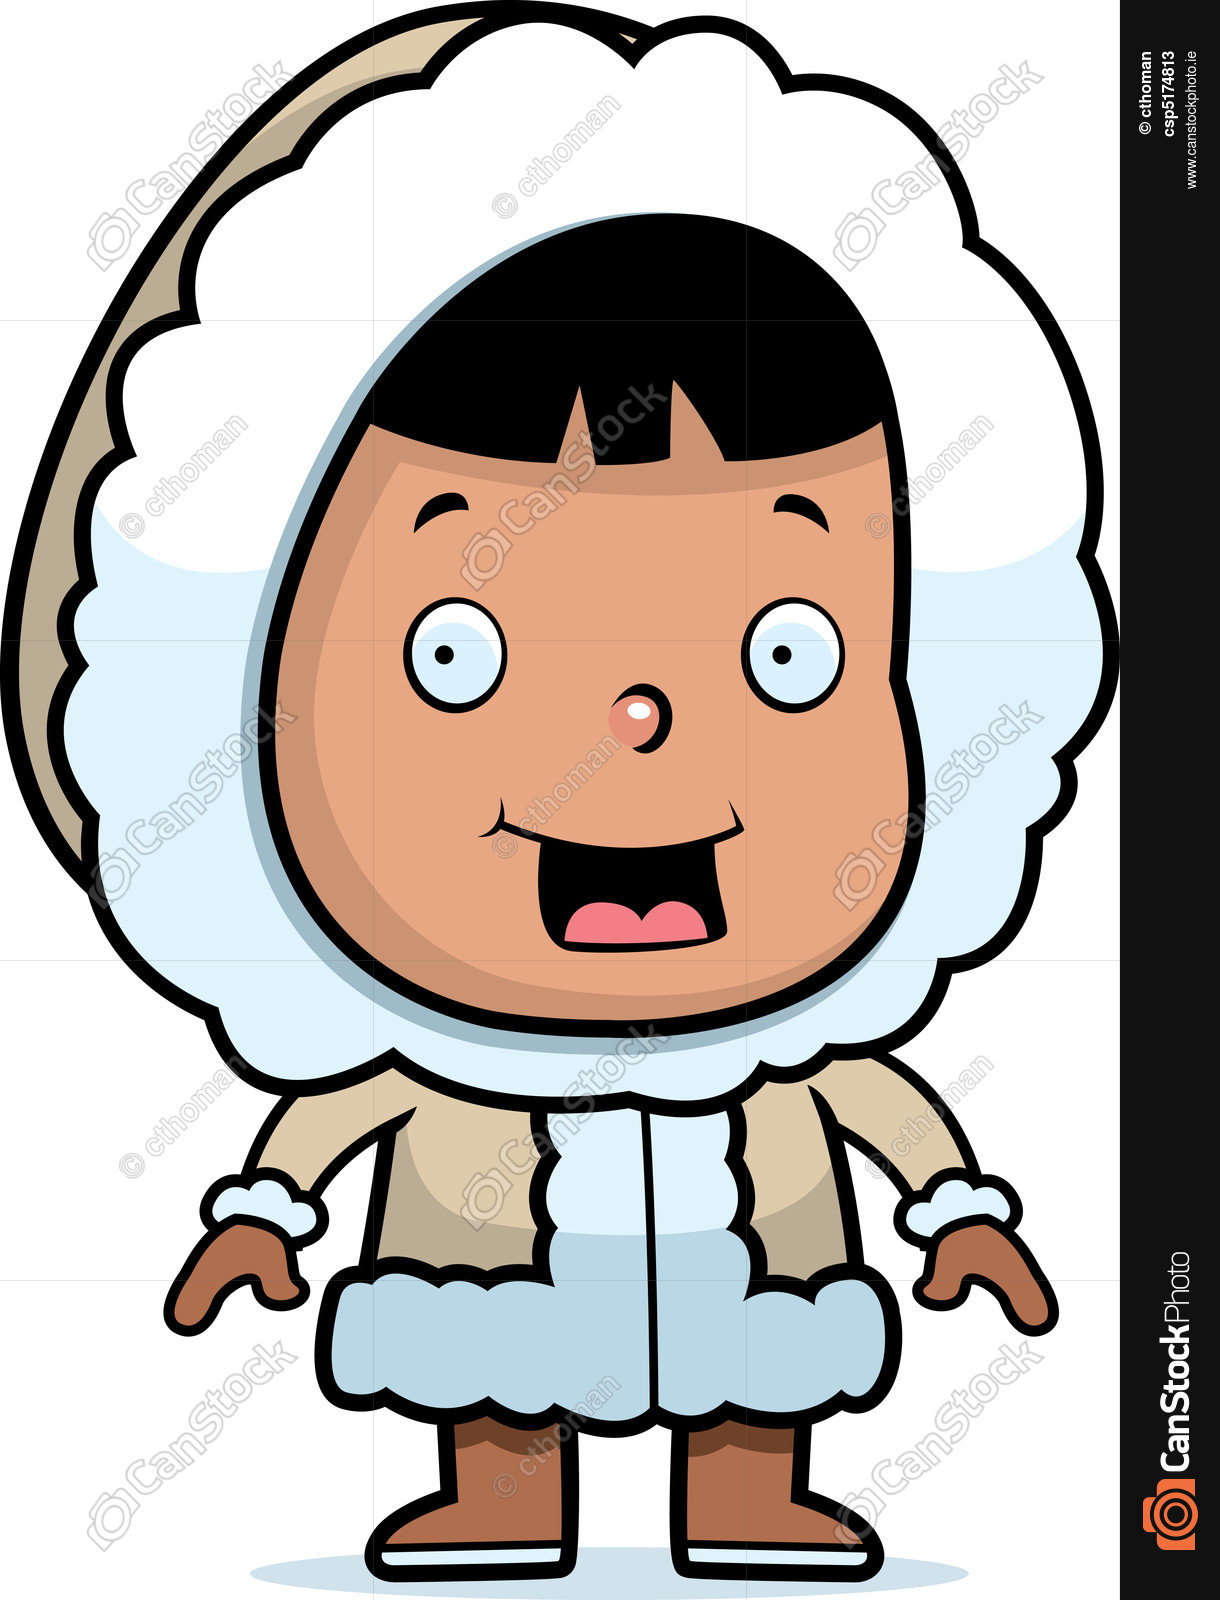 1220x1600 A Happy Cartoon Eskimo Child Standing And Smiling. Vectors